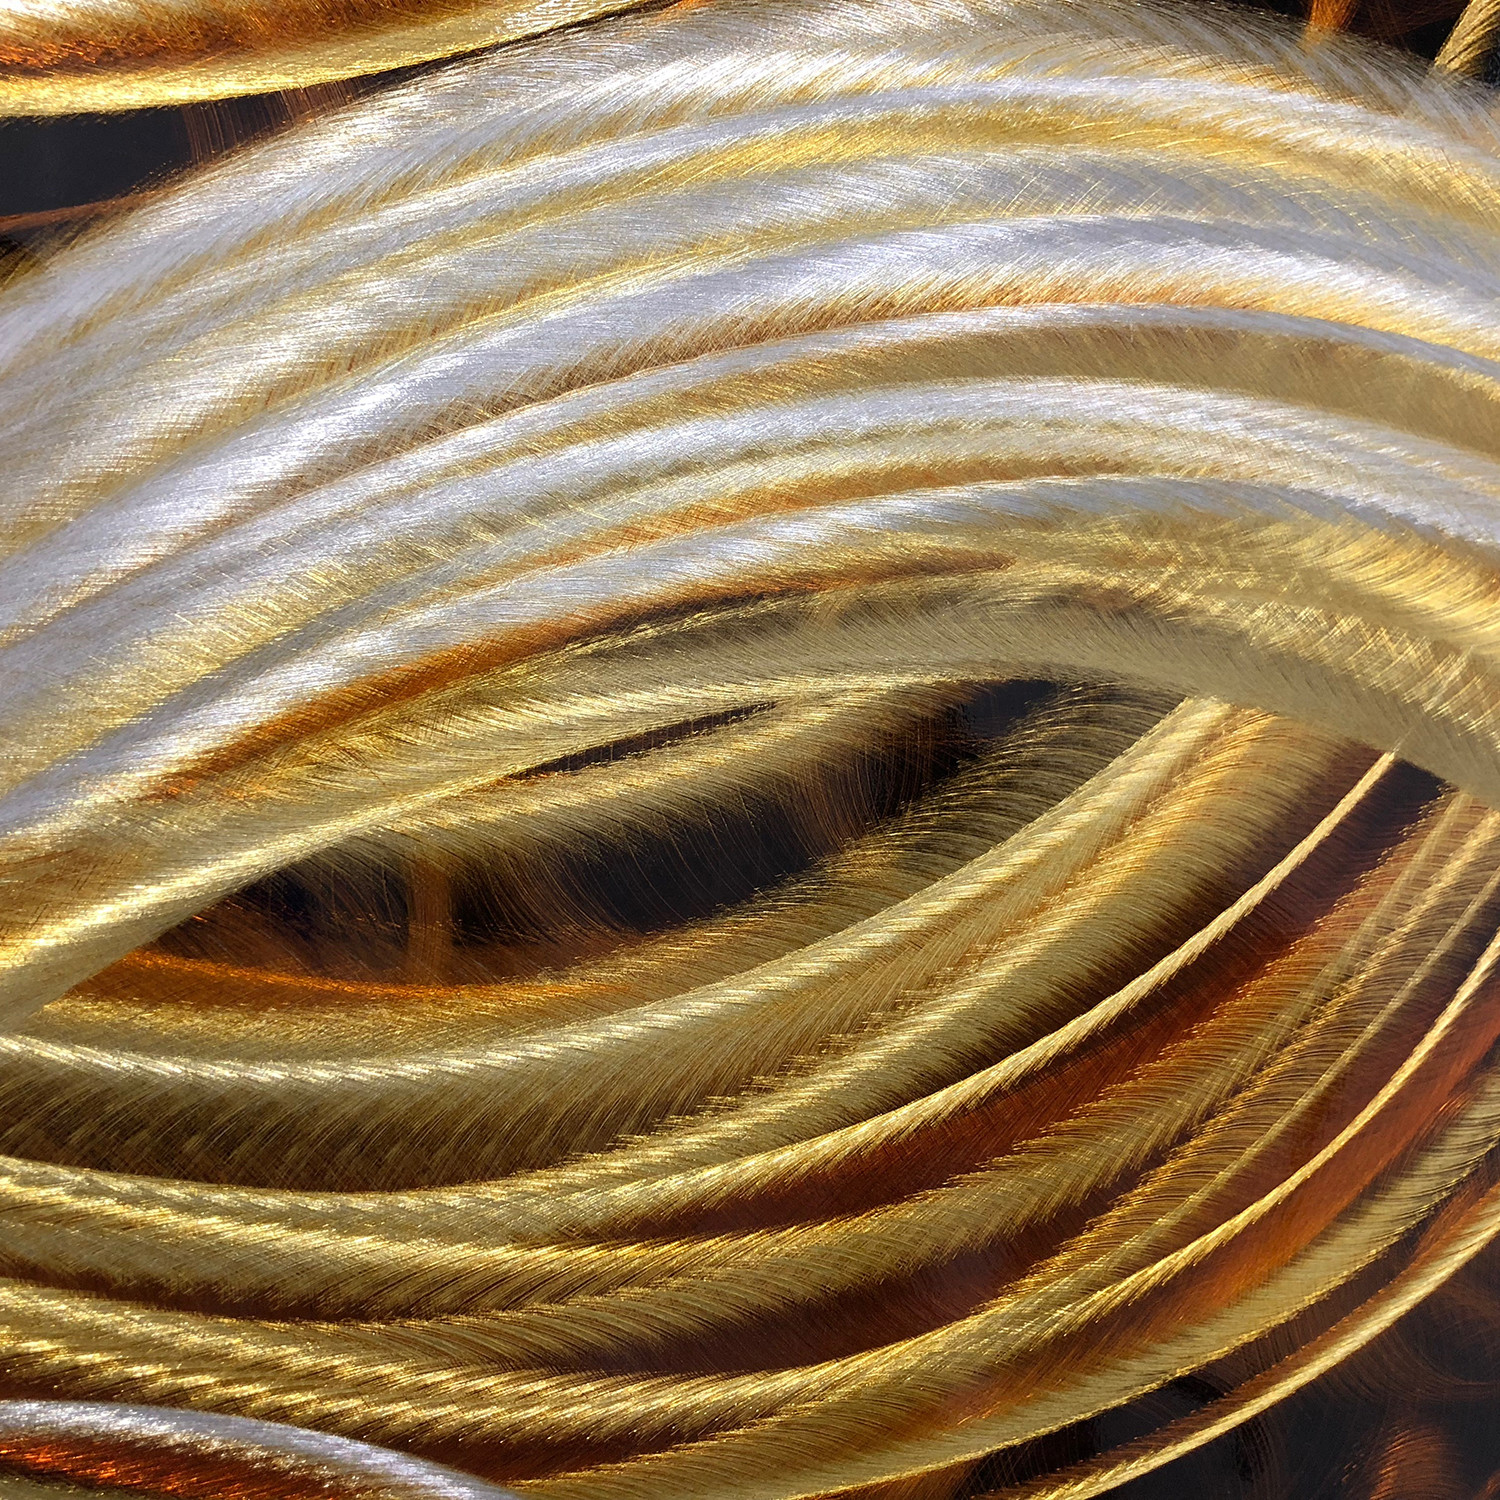 Gold River - Hand-Crafted Metallic Art - Touch of Modern